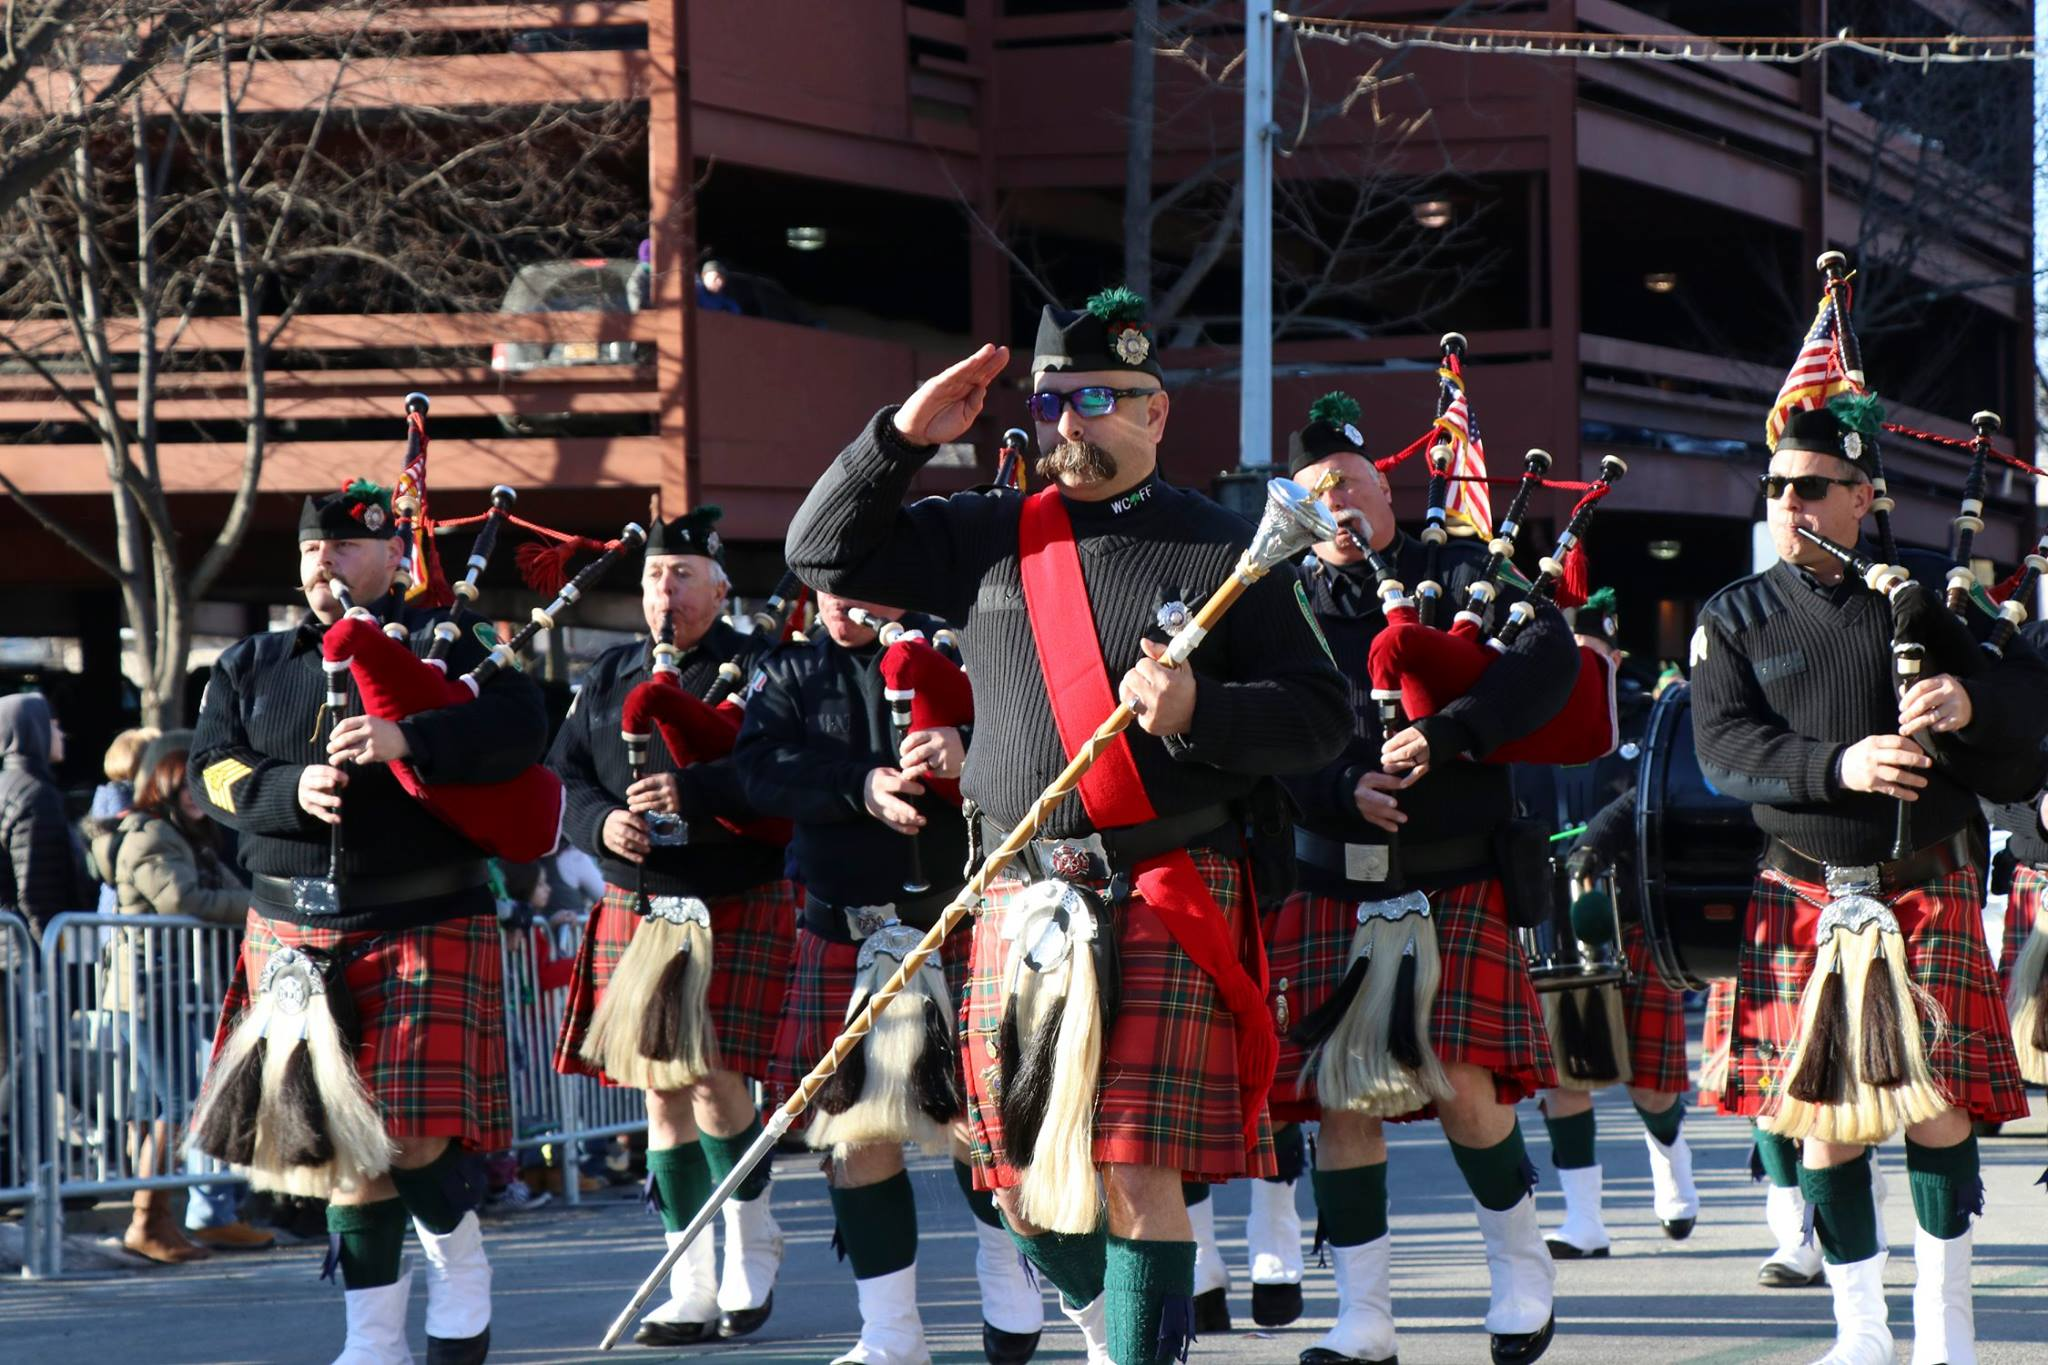 POSTPONED: 31st Annual Peekskill St. Patrick's Day Parade at Church Of The Assumption